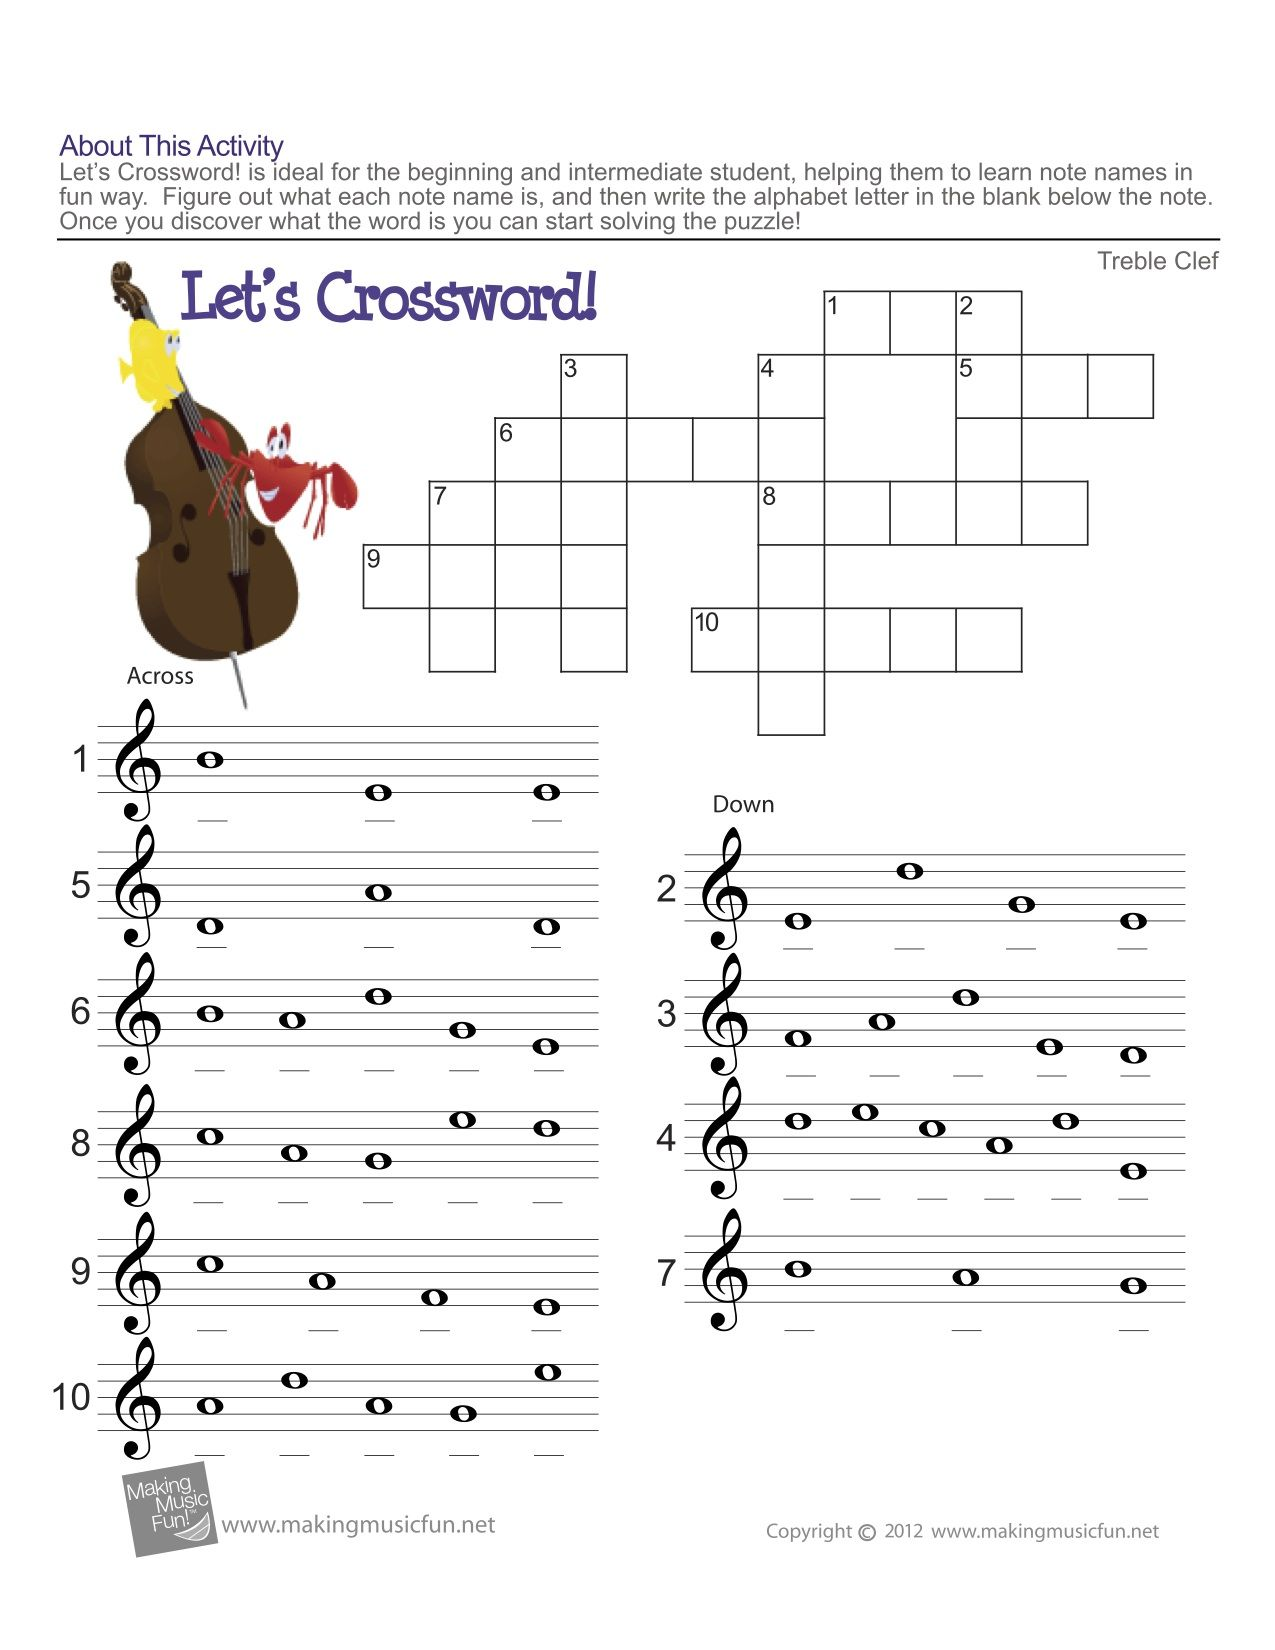 Treble Clef Fun Note Reading